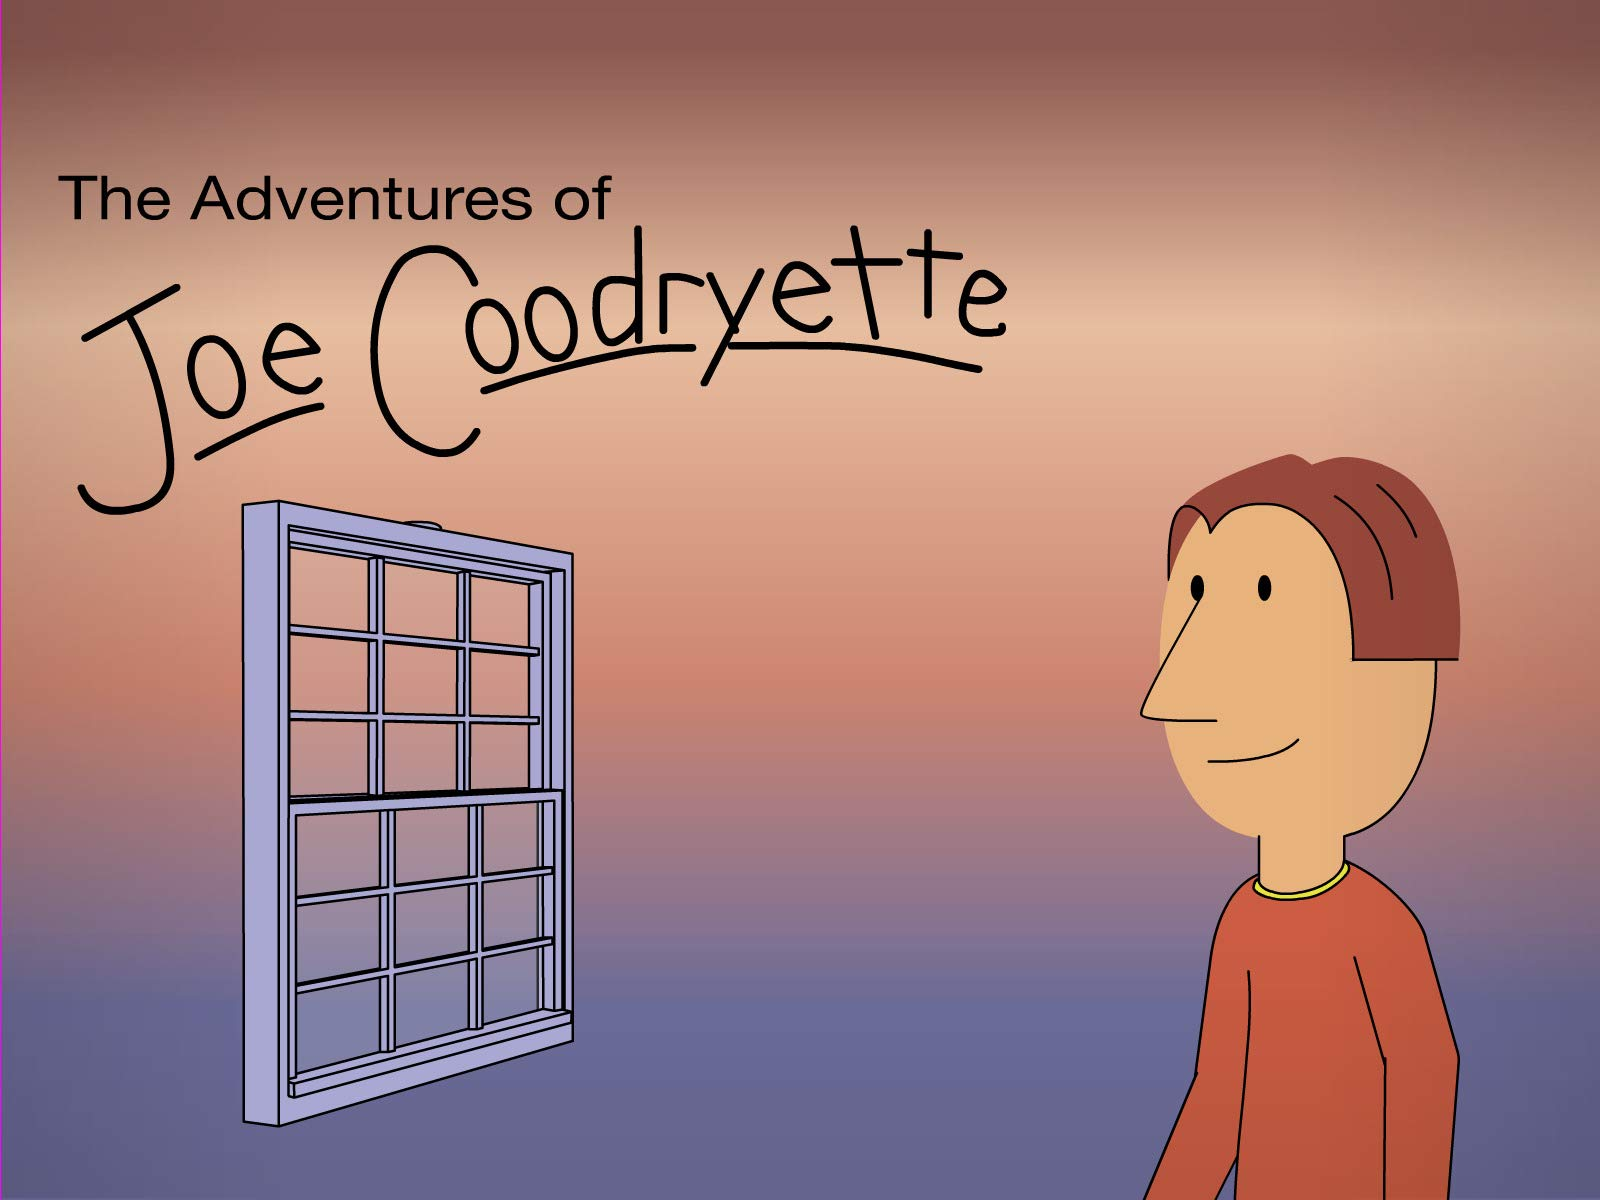 The Adventures of Joe Coodryette - Season 2